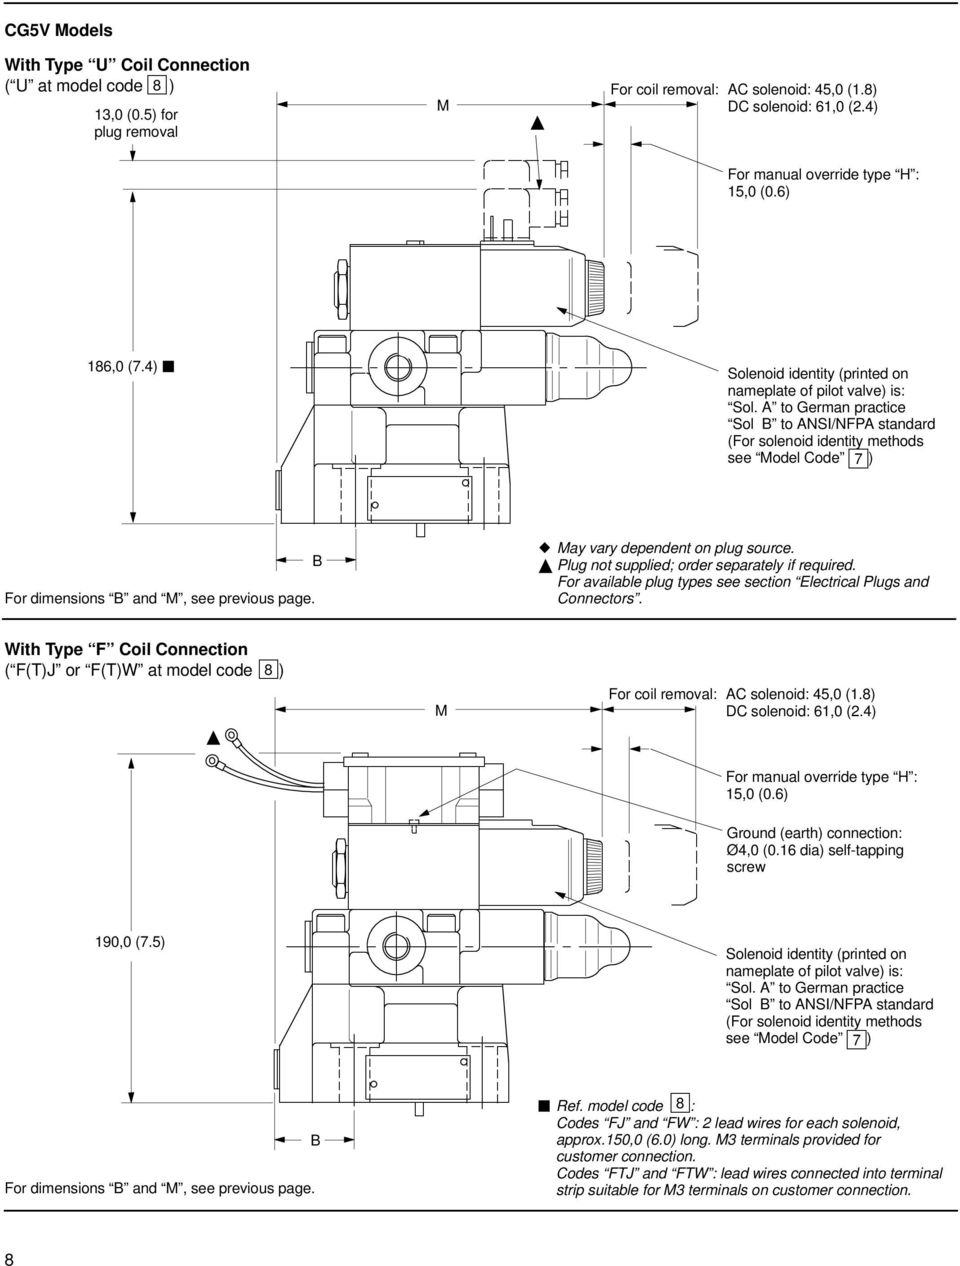 Pressure Relief And Sequence Valves Cg2v 6 8 10 Type 15 Solenoid Wiring Diagram A To German Practice Sol B Ansi Nfpa Standard For Identity Methods